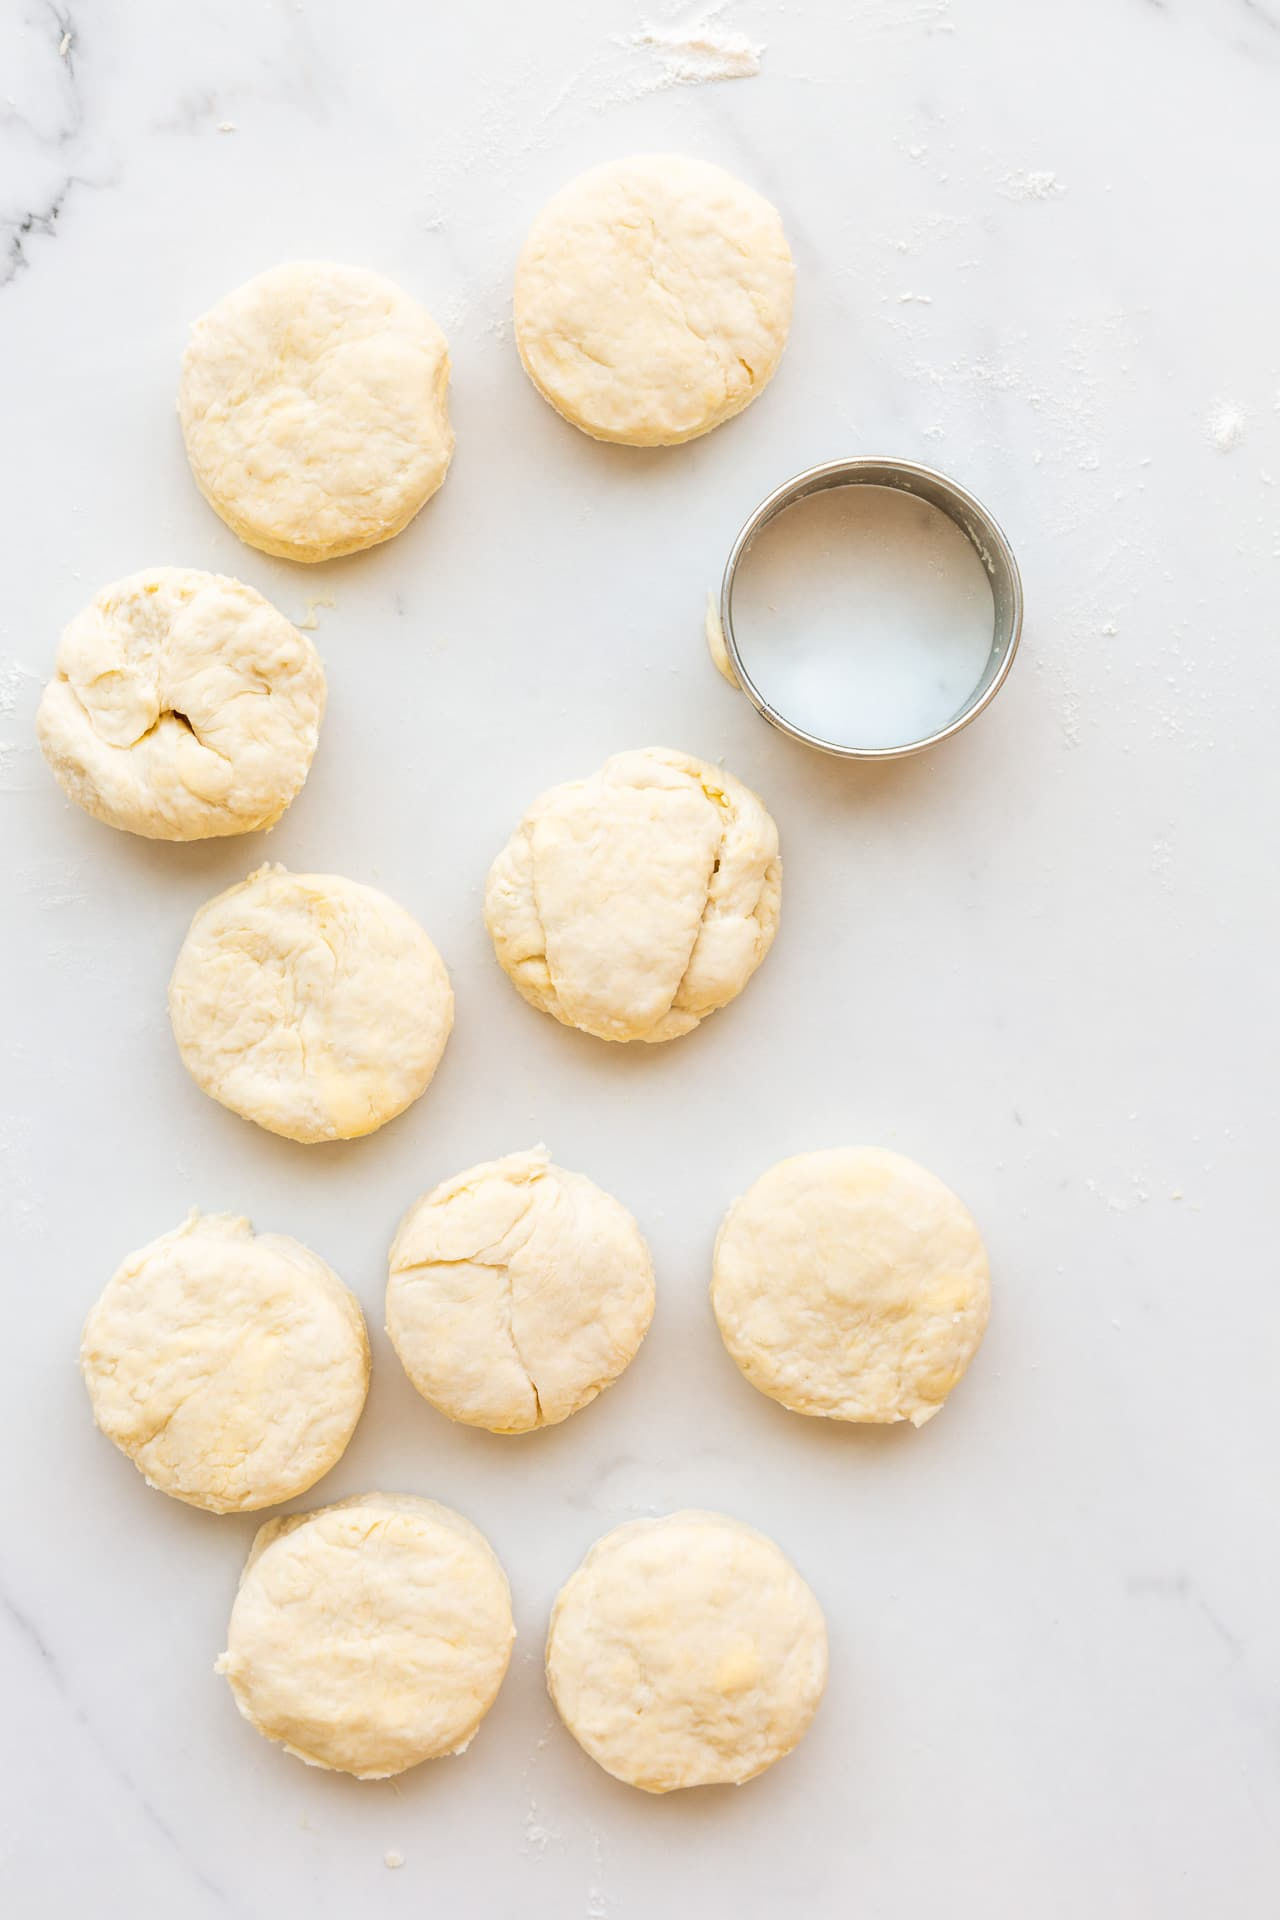 A round cookie cutter next to freshly cut homemade biscuits, ready to be baked